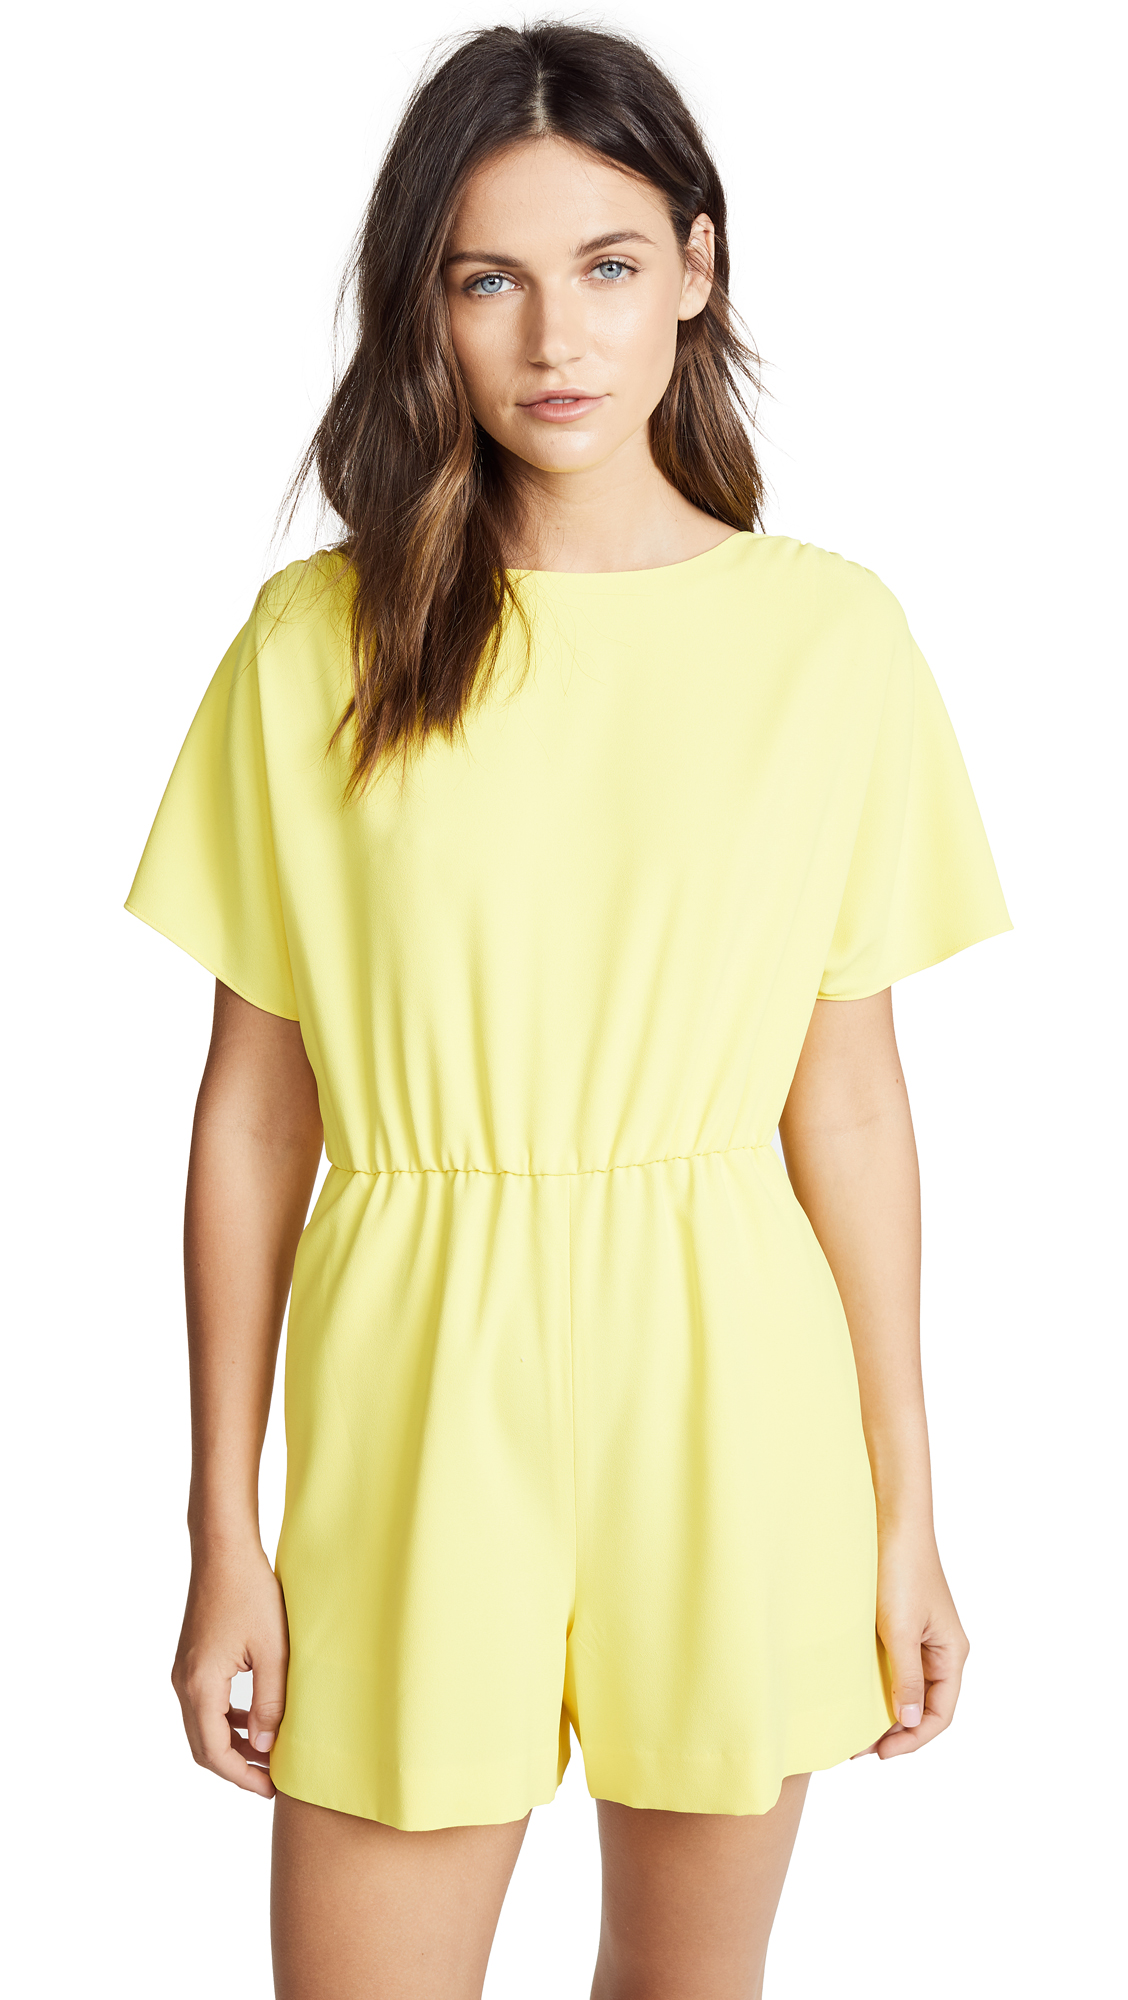 alice + olivia Ashlea Romper In Lemon